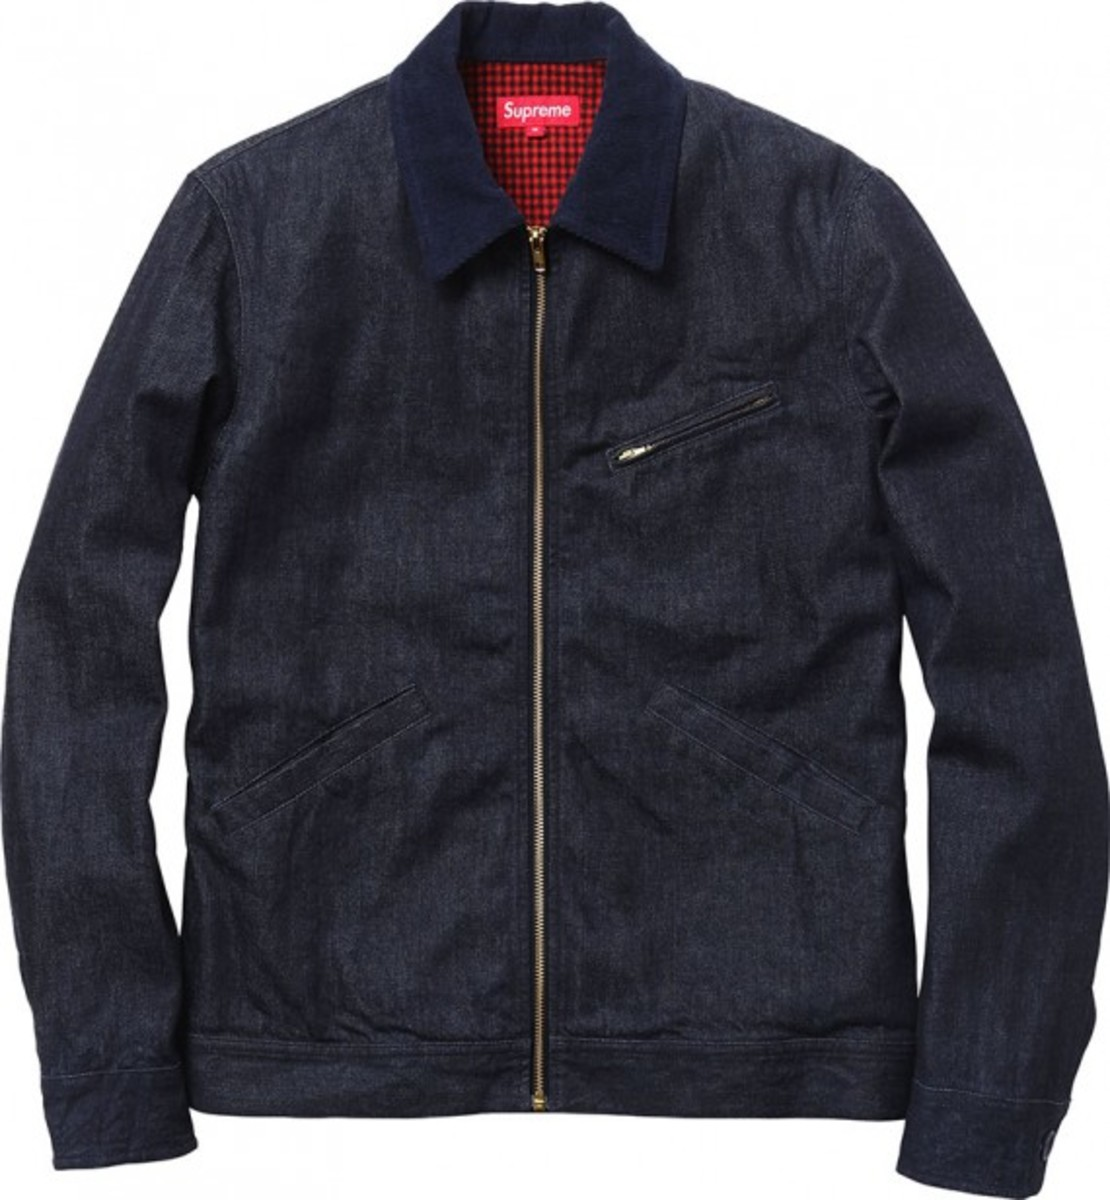 0-workers_jacket-zoom_1345455002